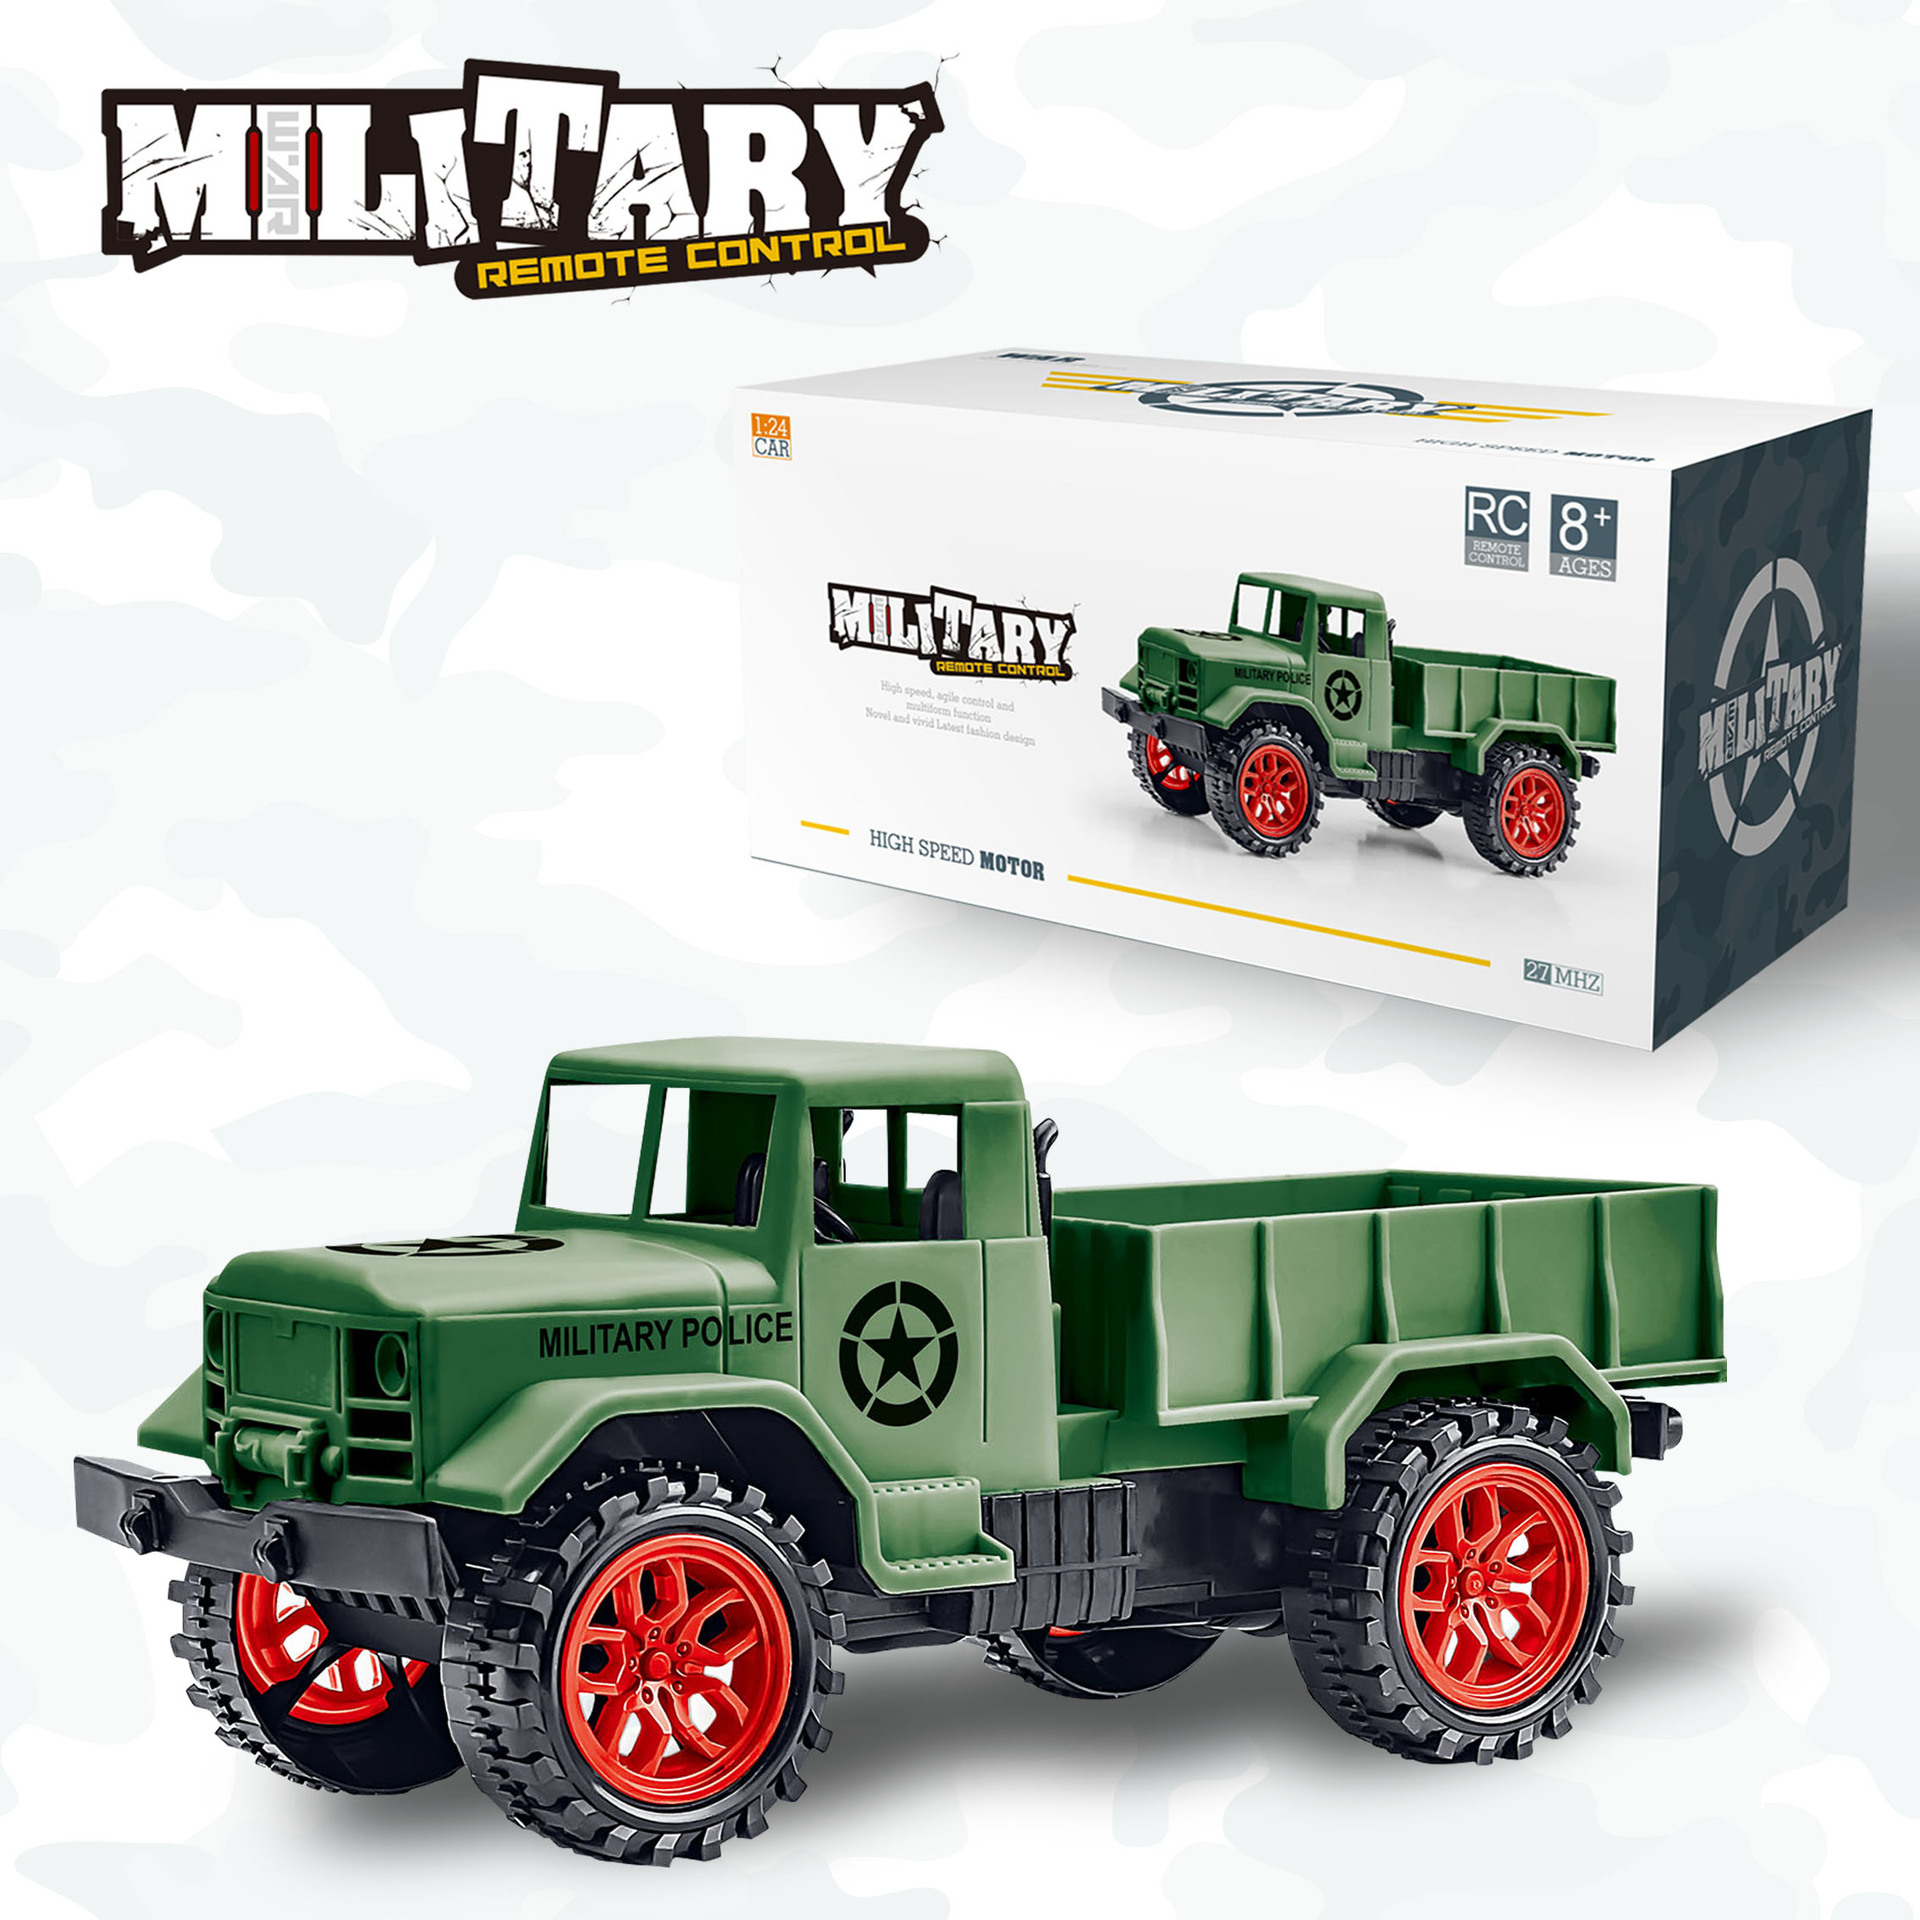 Ertong Remote Control Military Truck Four wheel Off road Military Truck Model Toys Children's Puzzle Gifts Hot selling Toys-in RC Cars from Toys & Hobbies